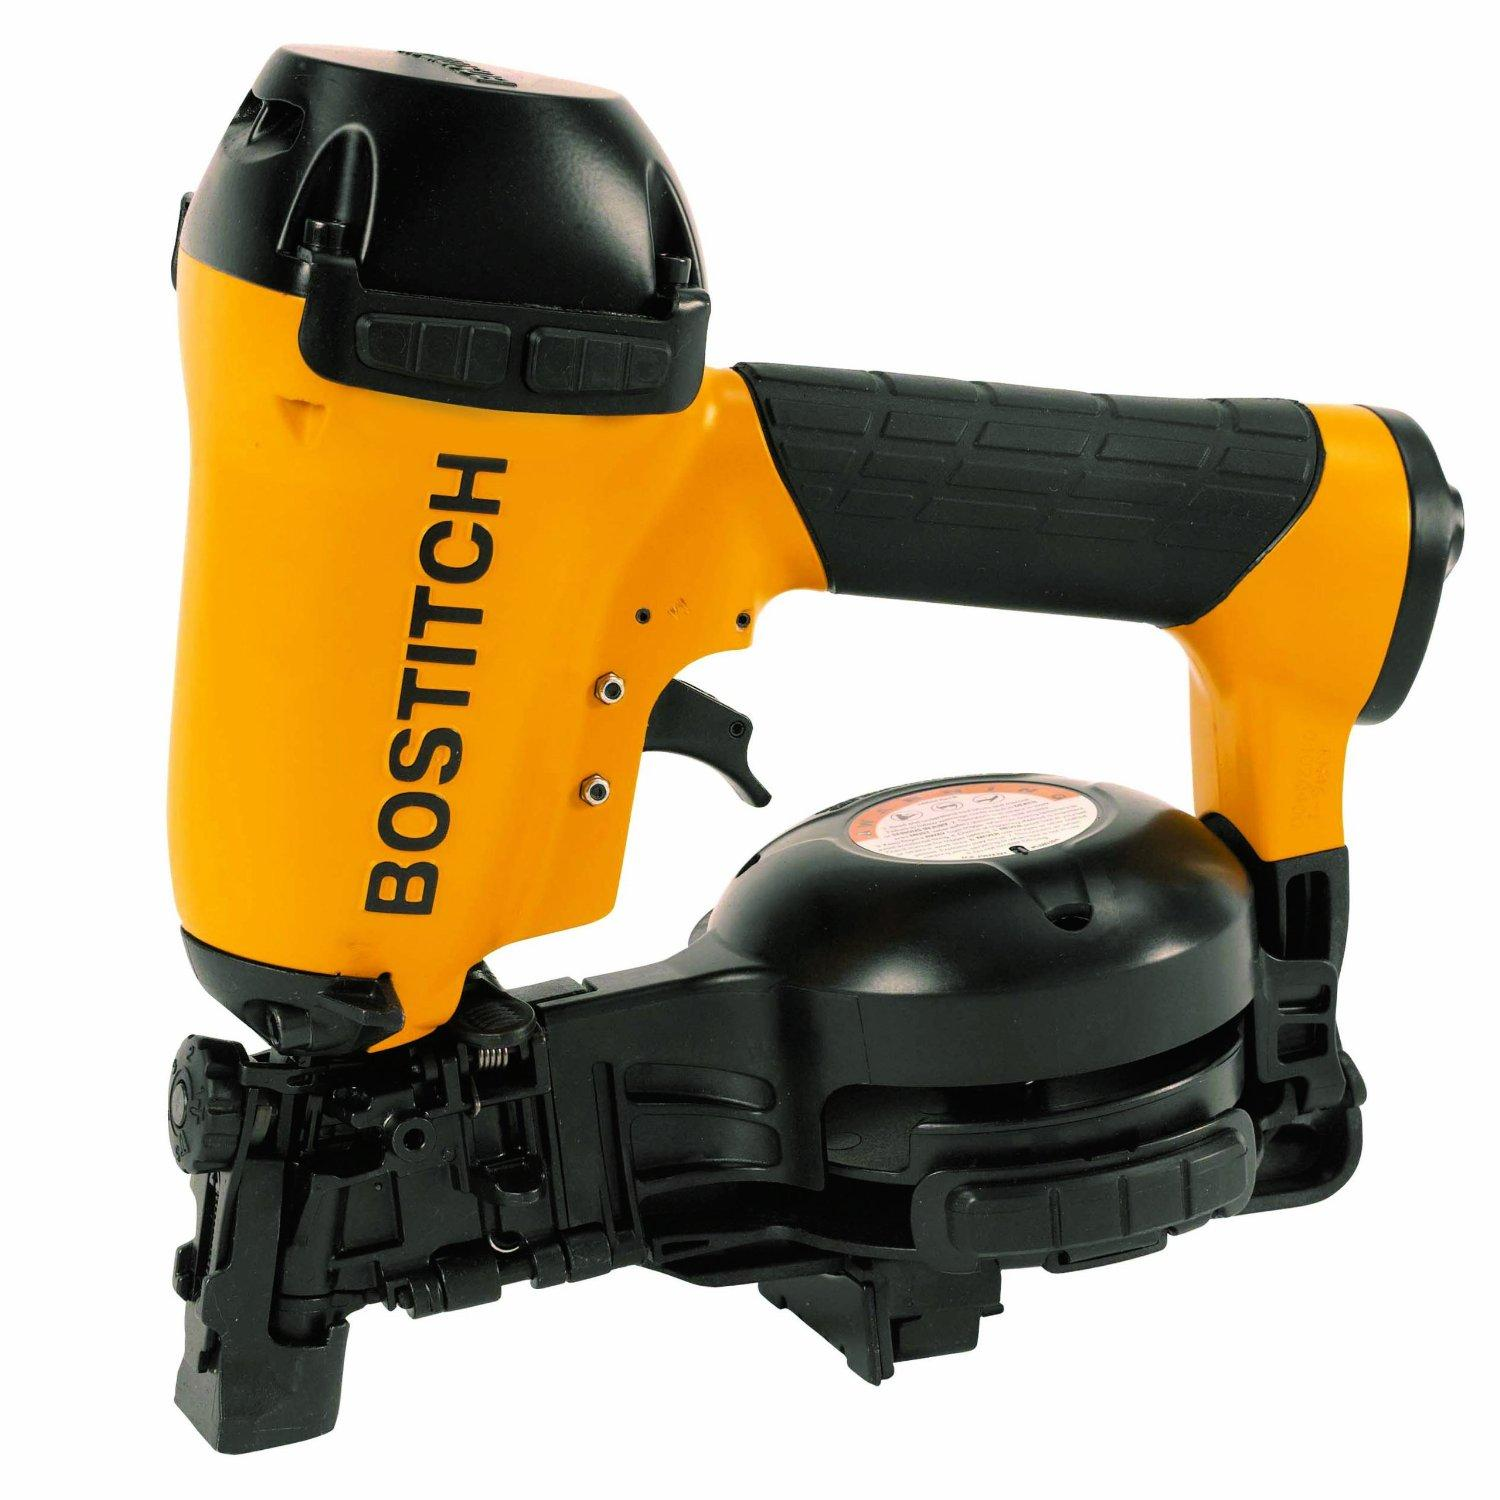 Bostitch 15 Degree Coil Roofing Nailer